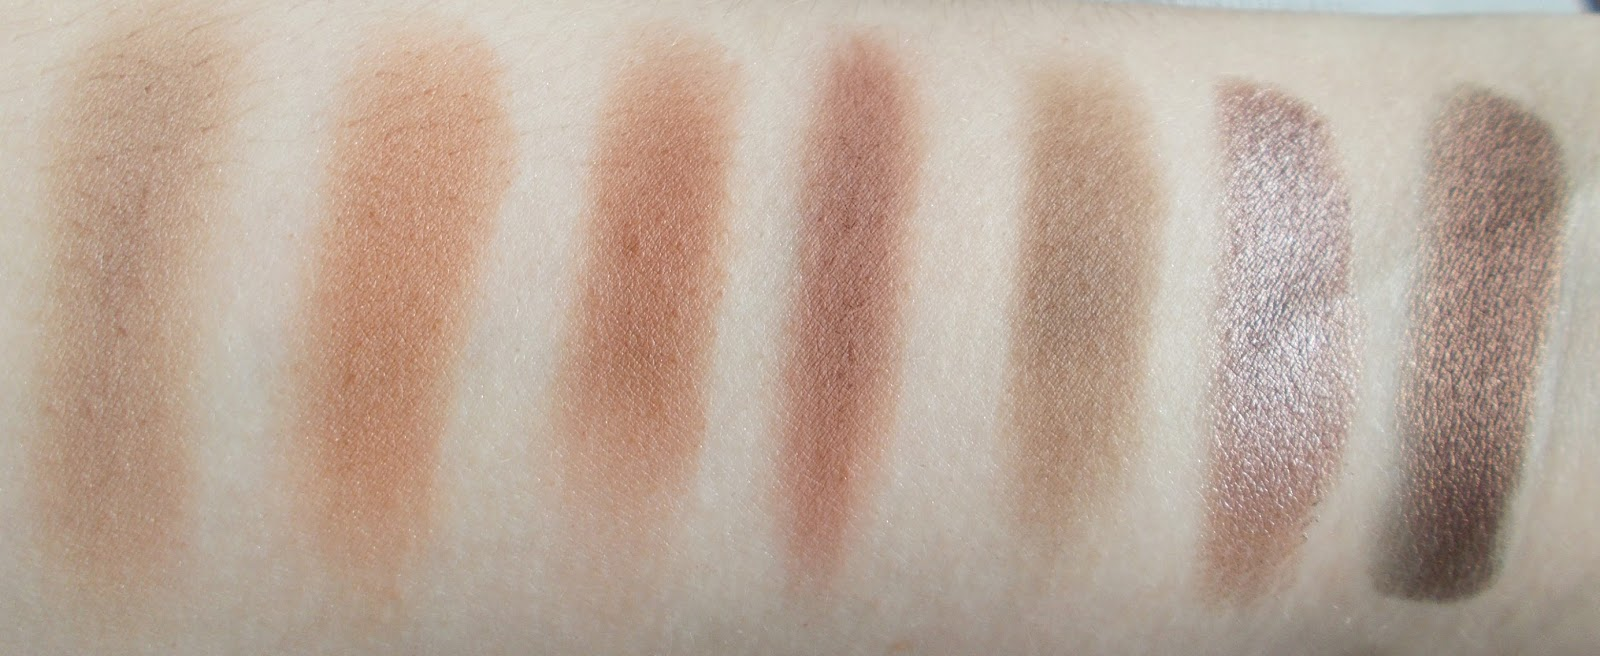 row 3 makeup geek eyeshadow swatches barcelona beach frappe cocoa bear wild west mocha mesmerised steampunk